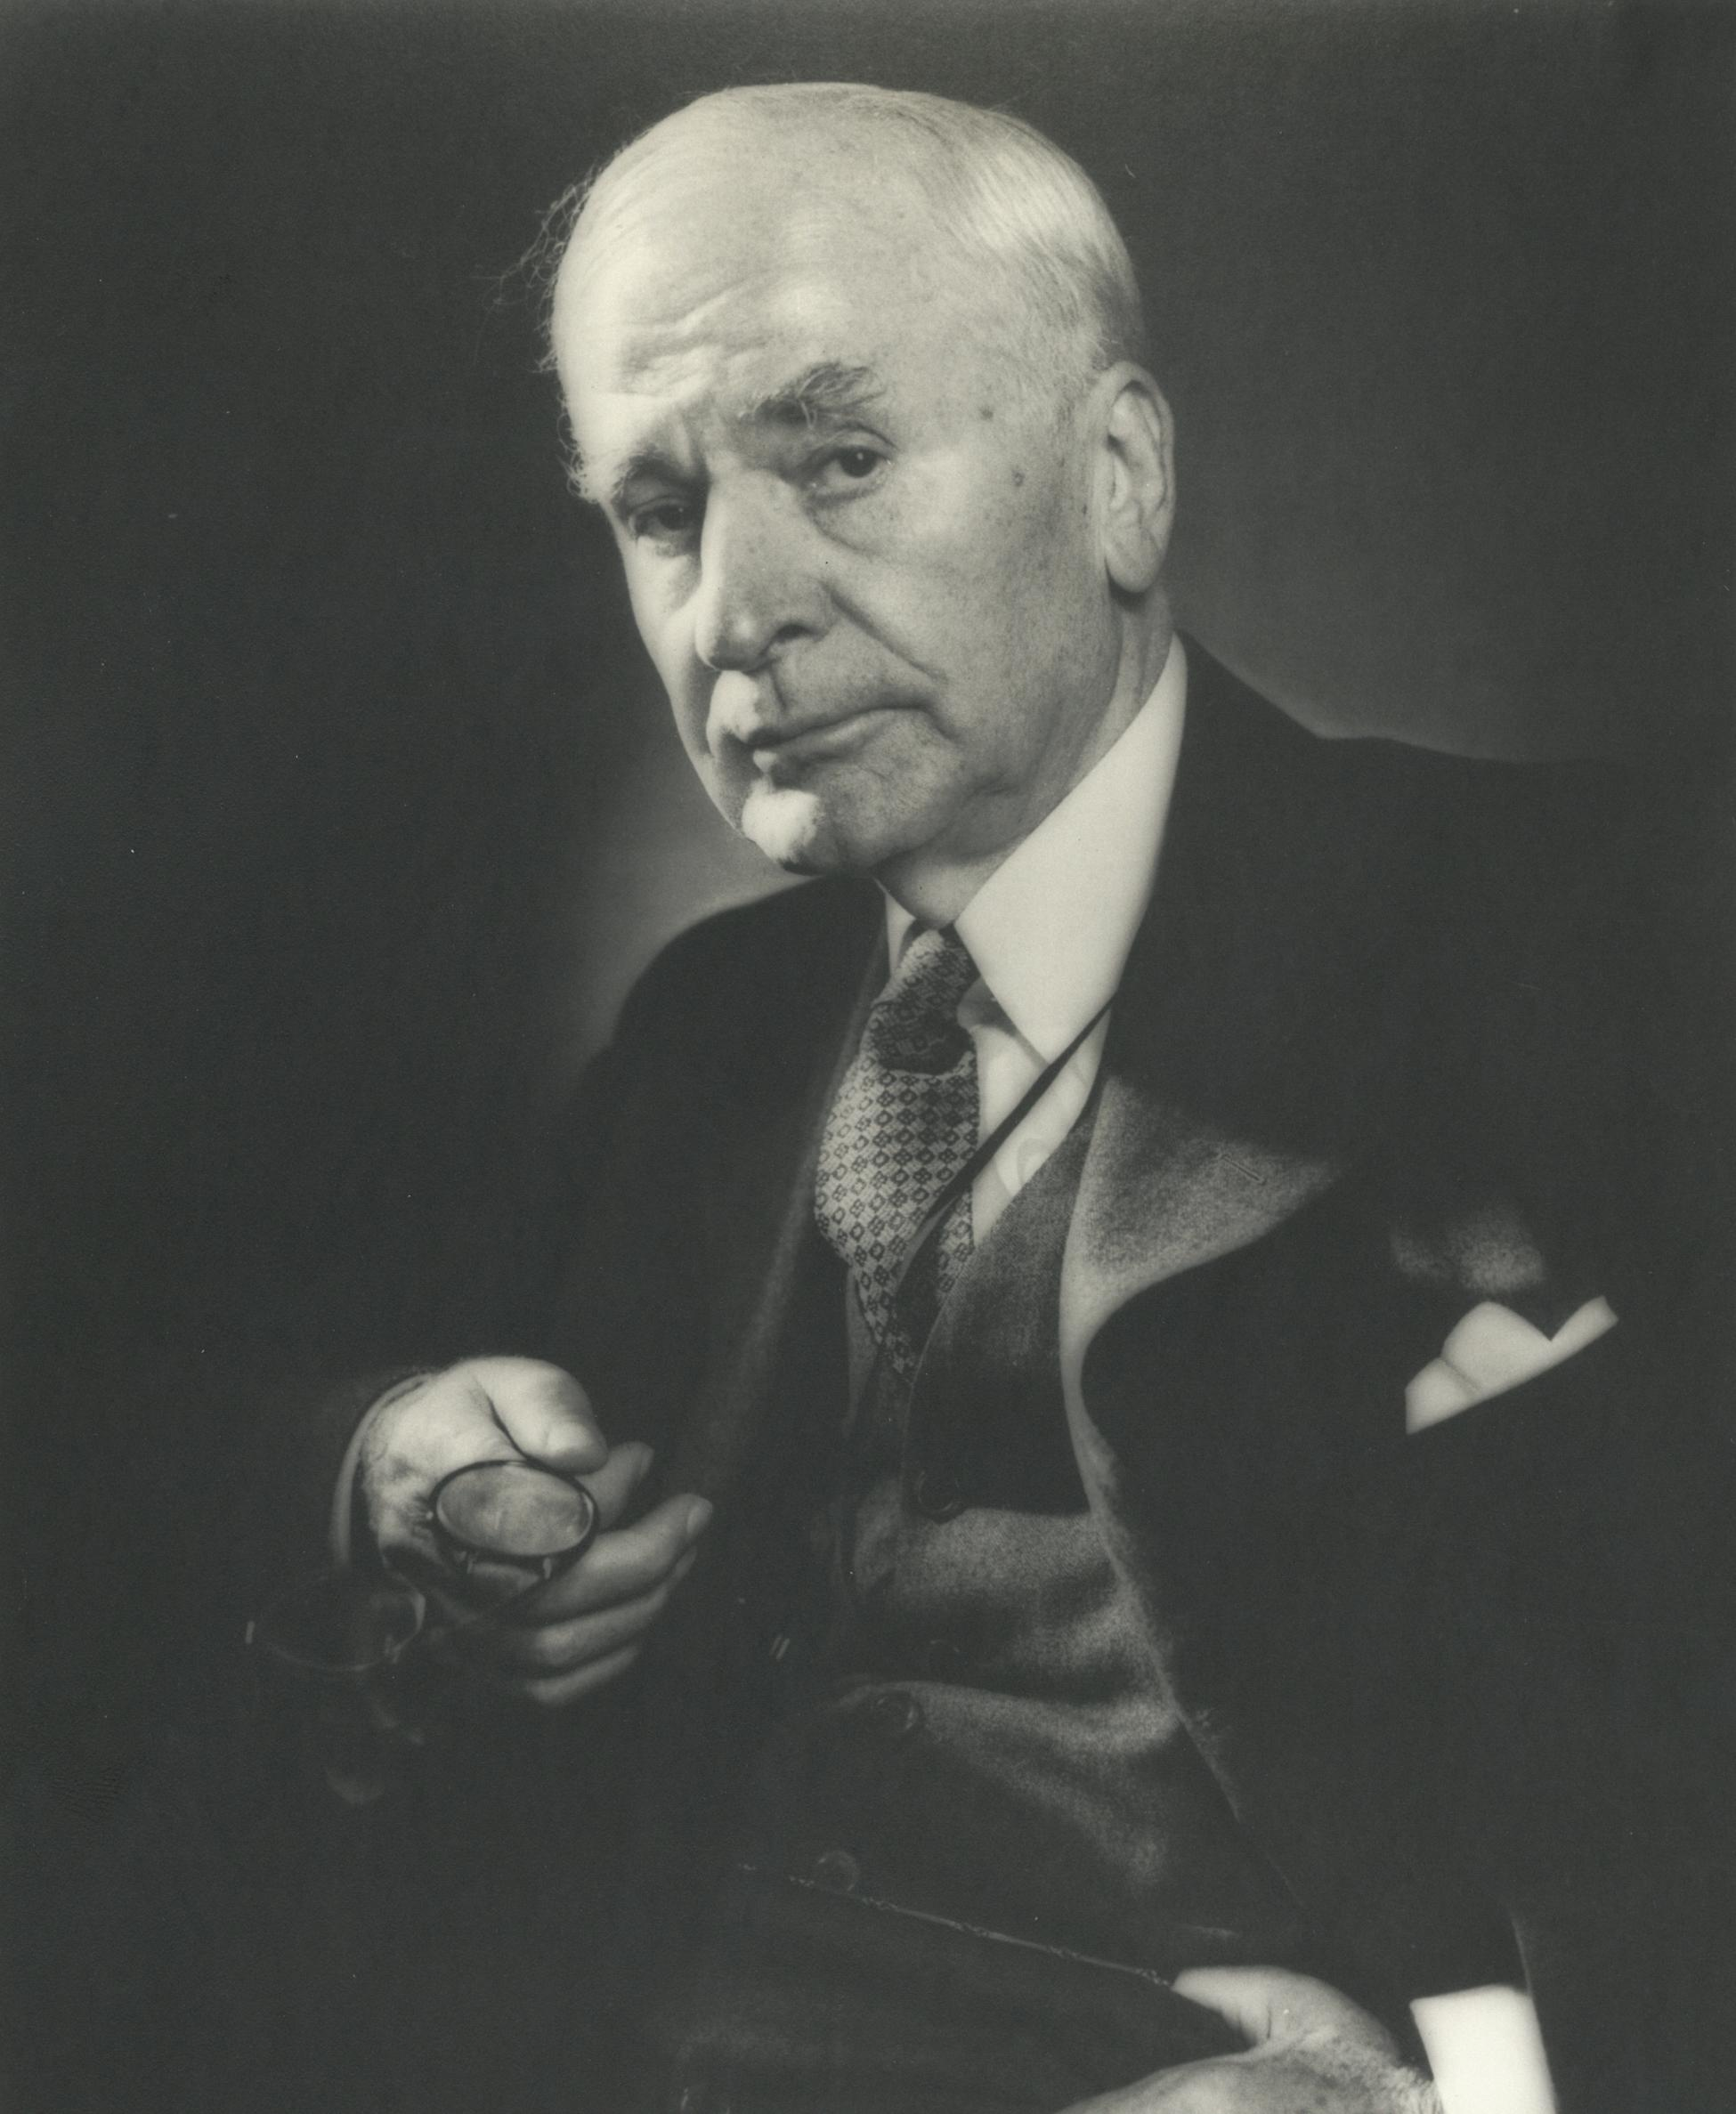 "cordell hull the hero of peace behind the scene essay Intelligence officer's secret story behind 007, by the course of history,"" first by influencing secretary of state cordell hull and ultimately."